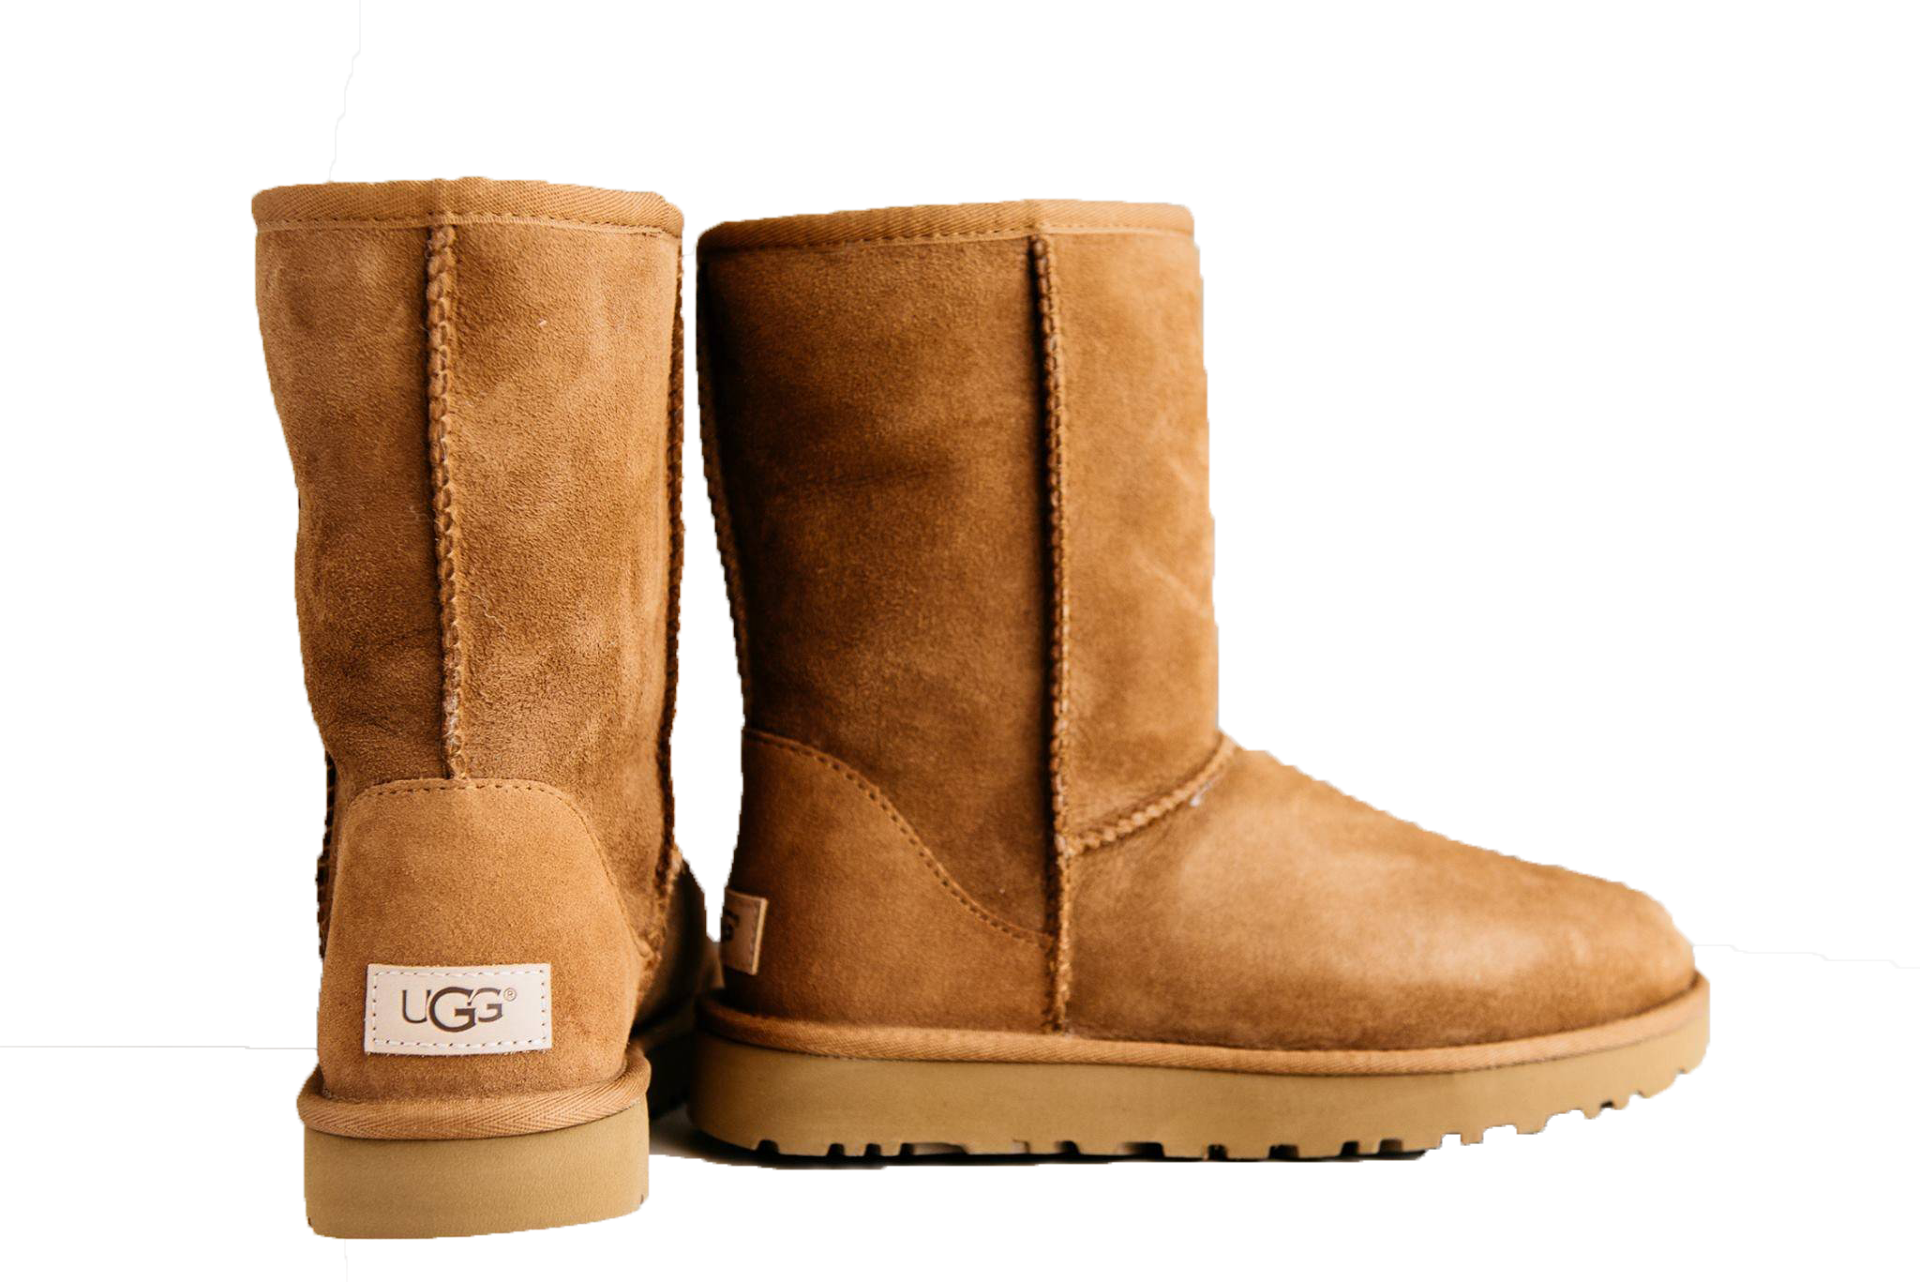 The ugg boots did not work